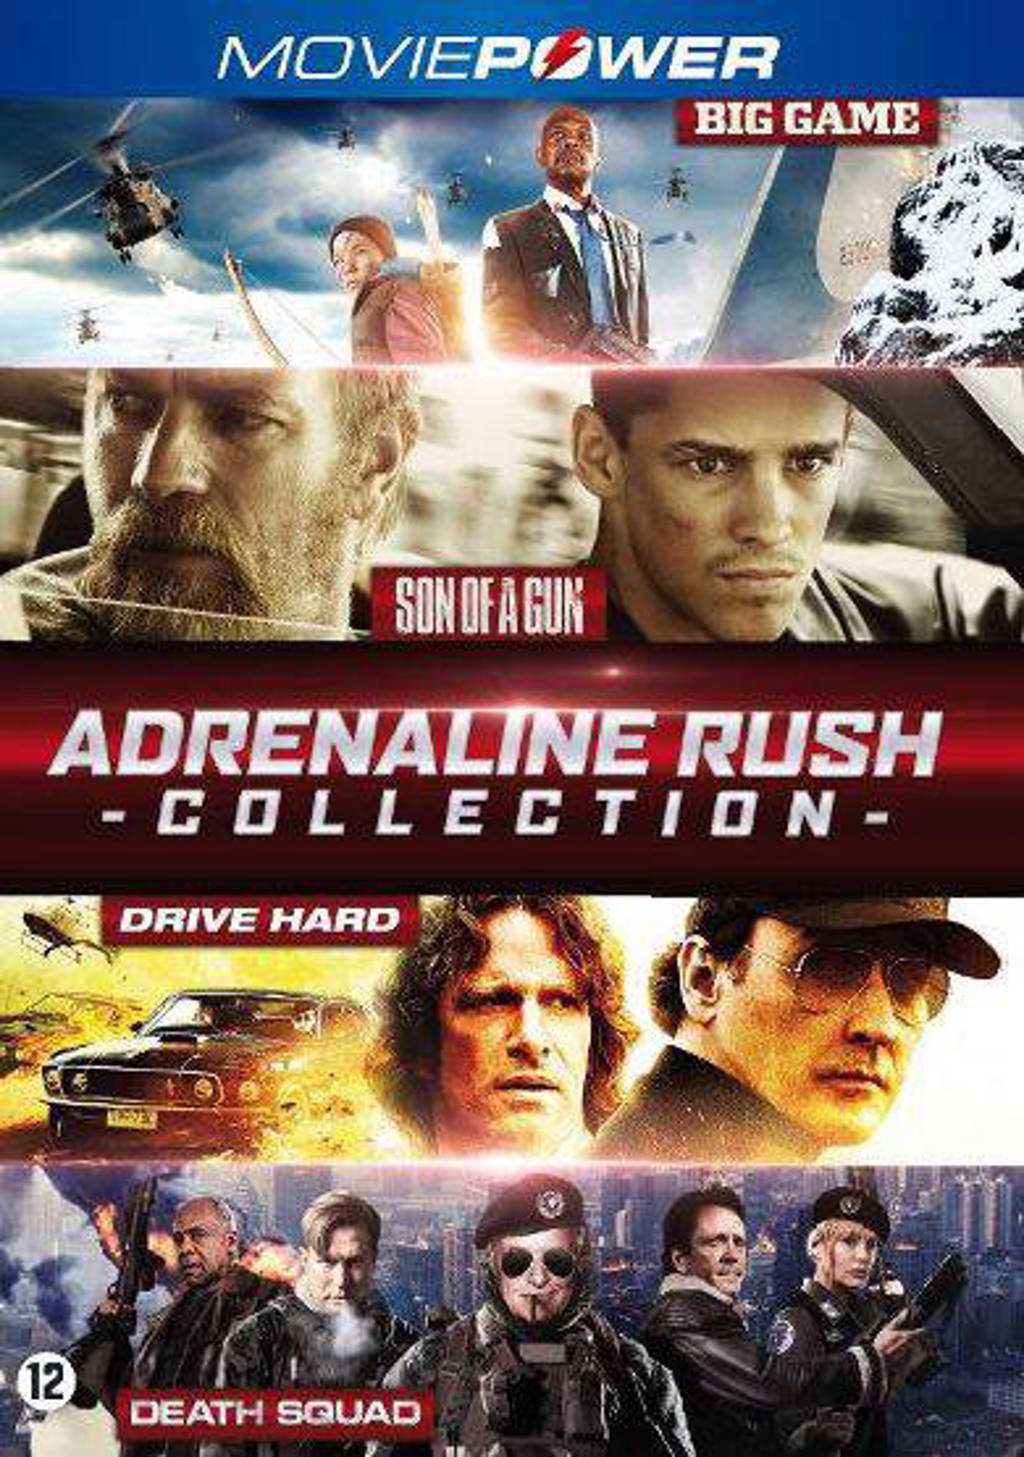 Adrenaline rush collection 1 (Blu-ray)